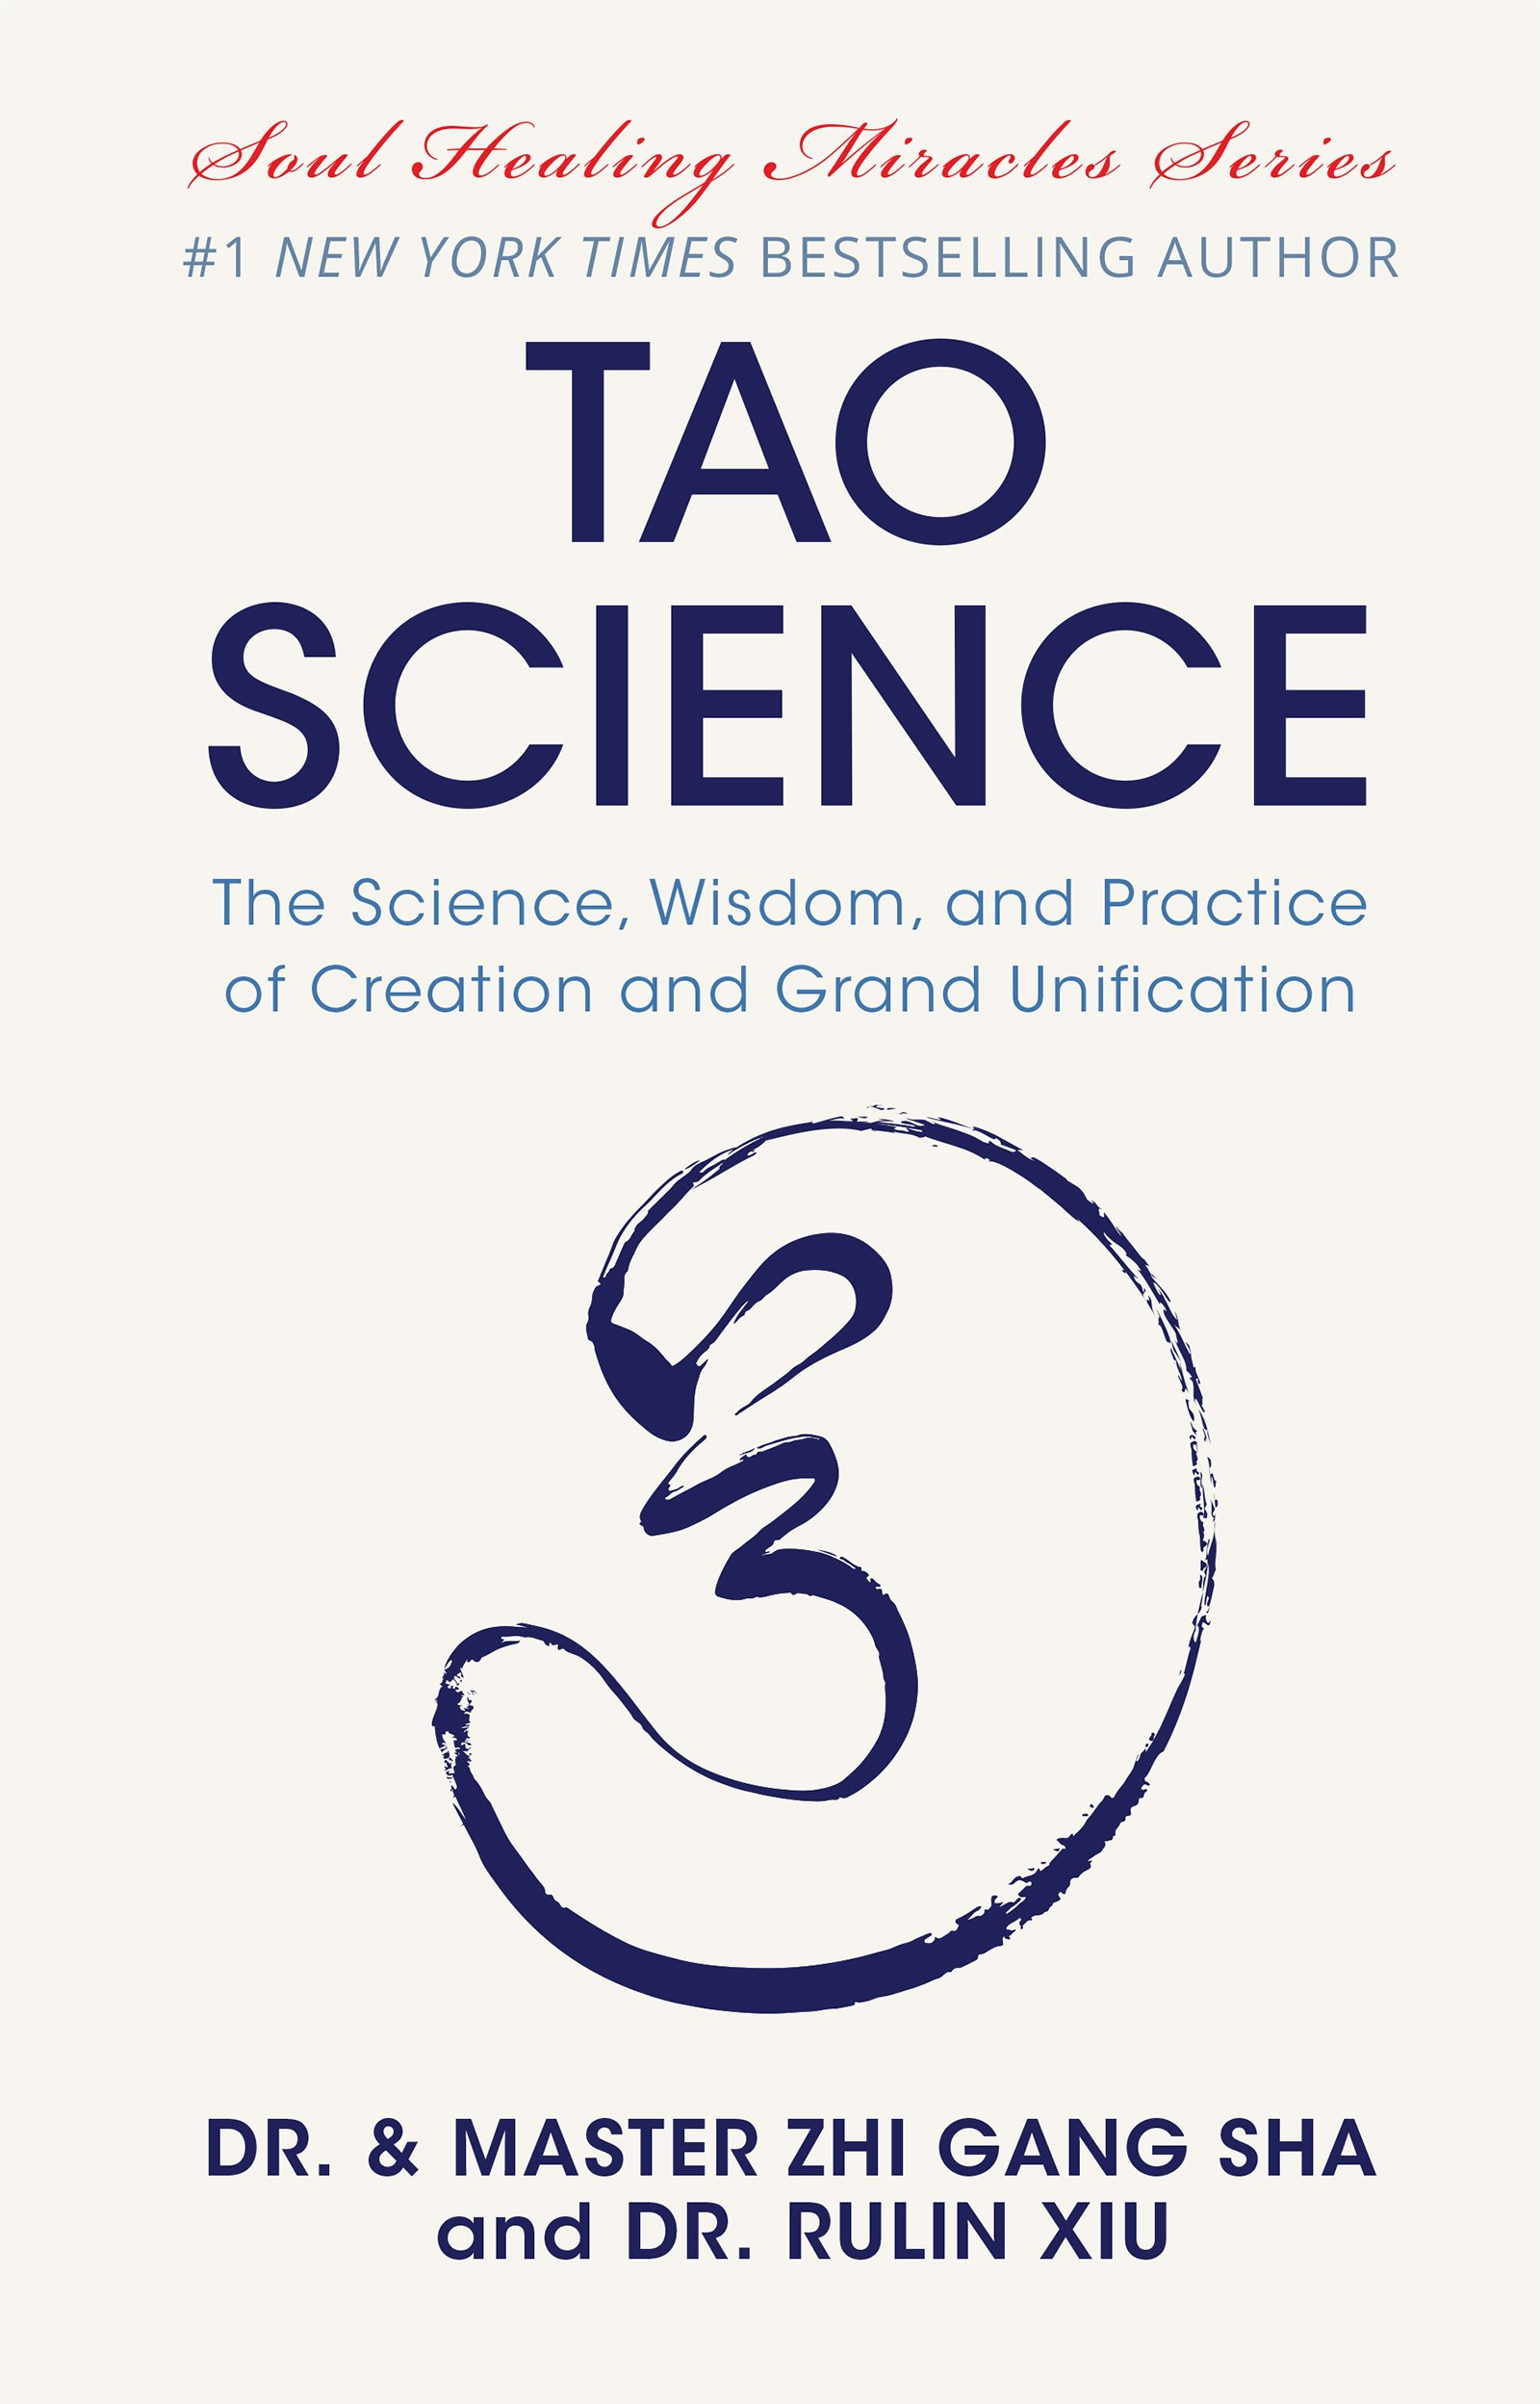 Tao Science: The Science, Wisdom, and Practice of Creation and Grand Unification